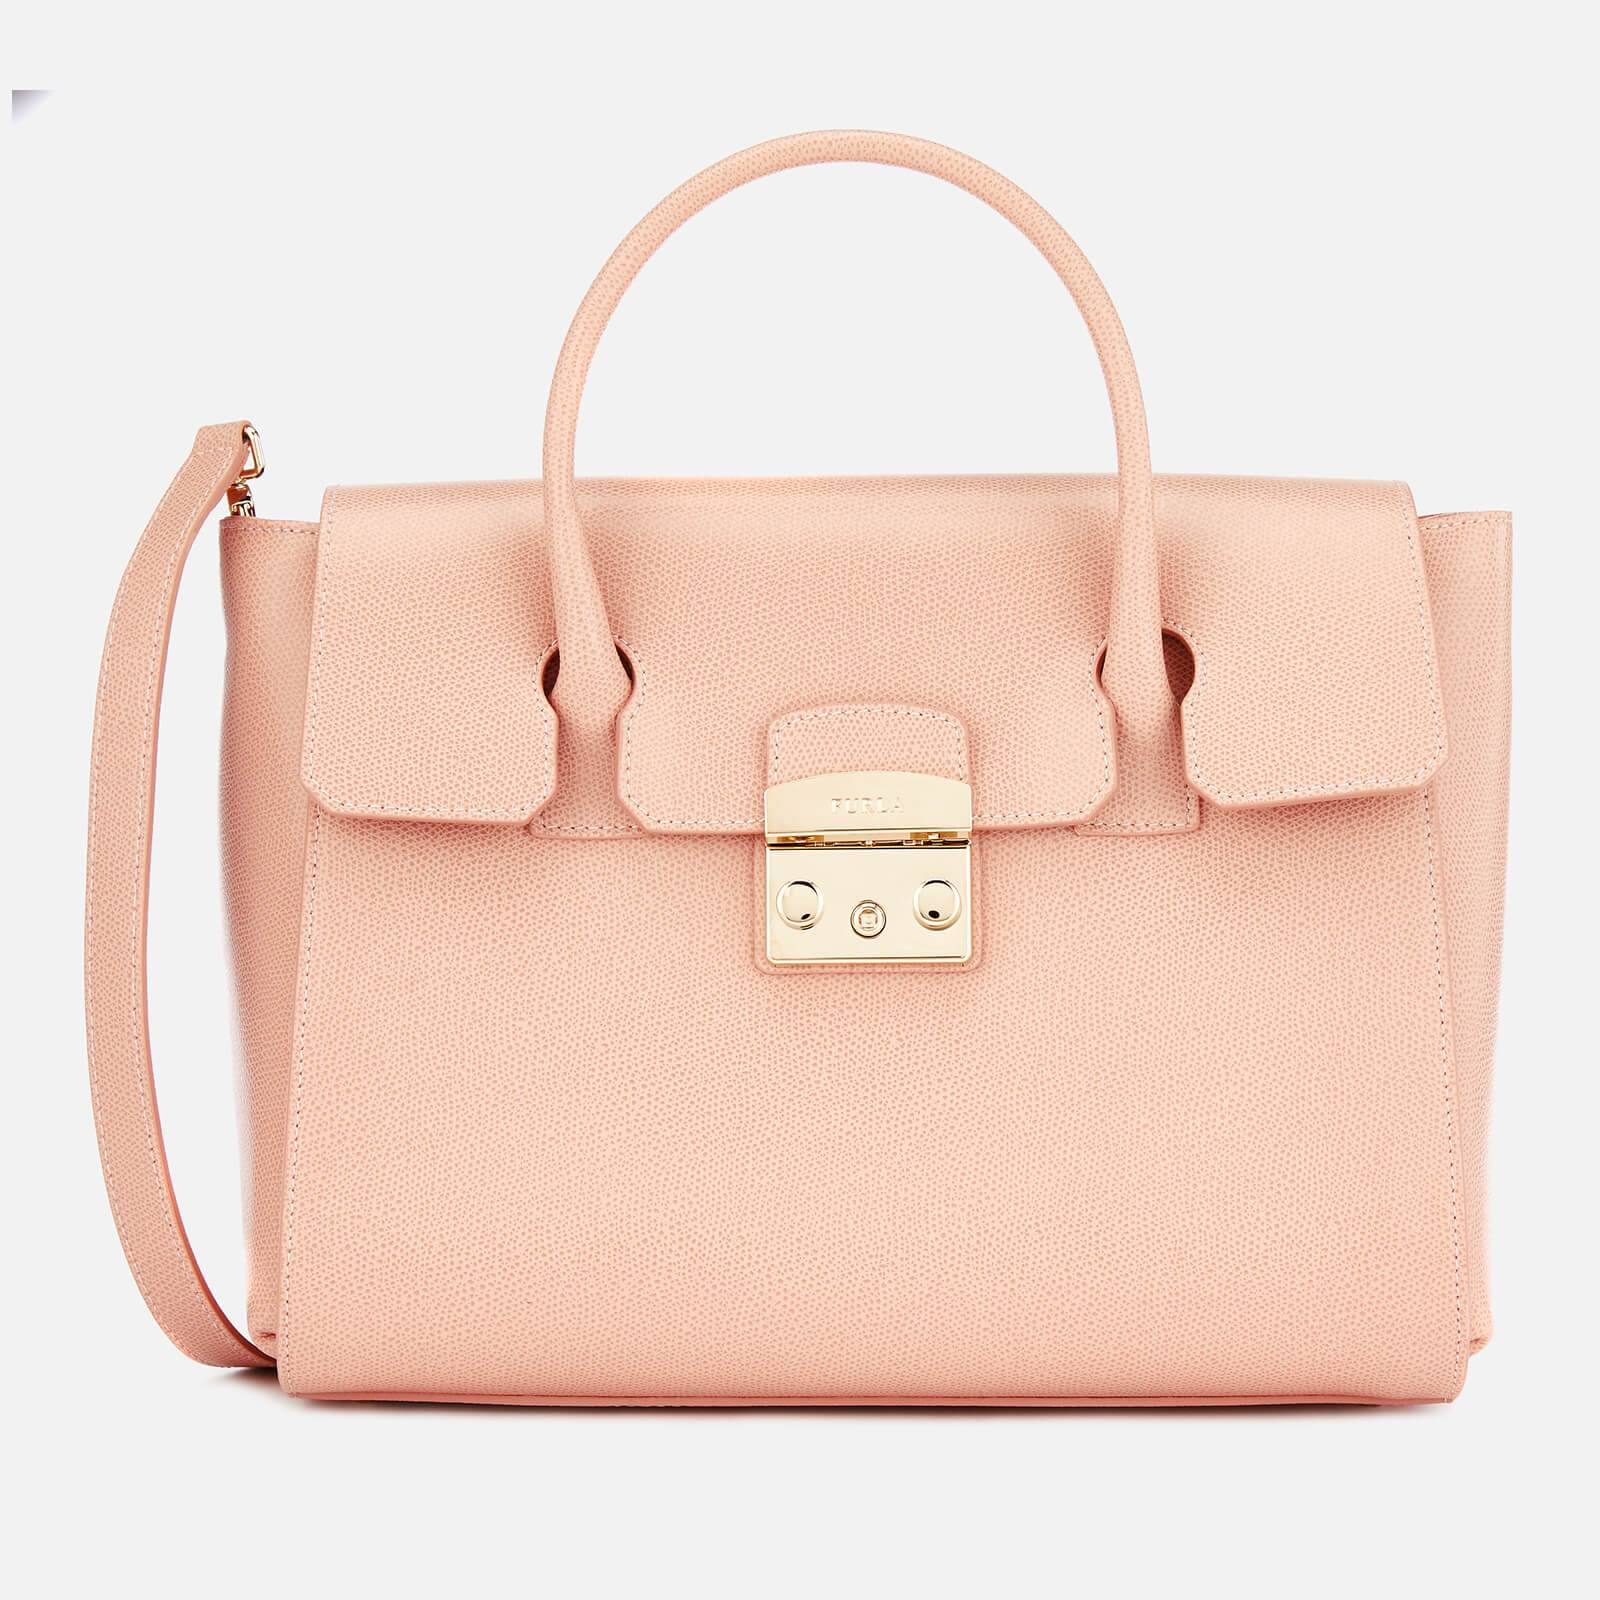 Furla Women's Metropolis Medium Satchel - Moonstone